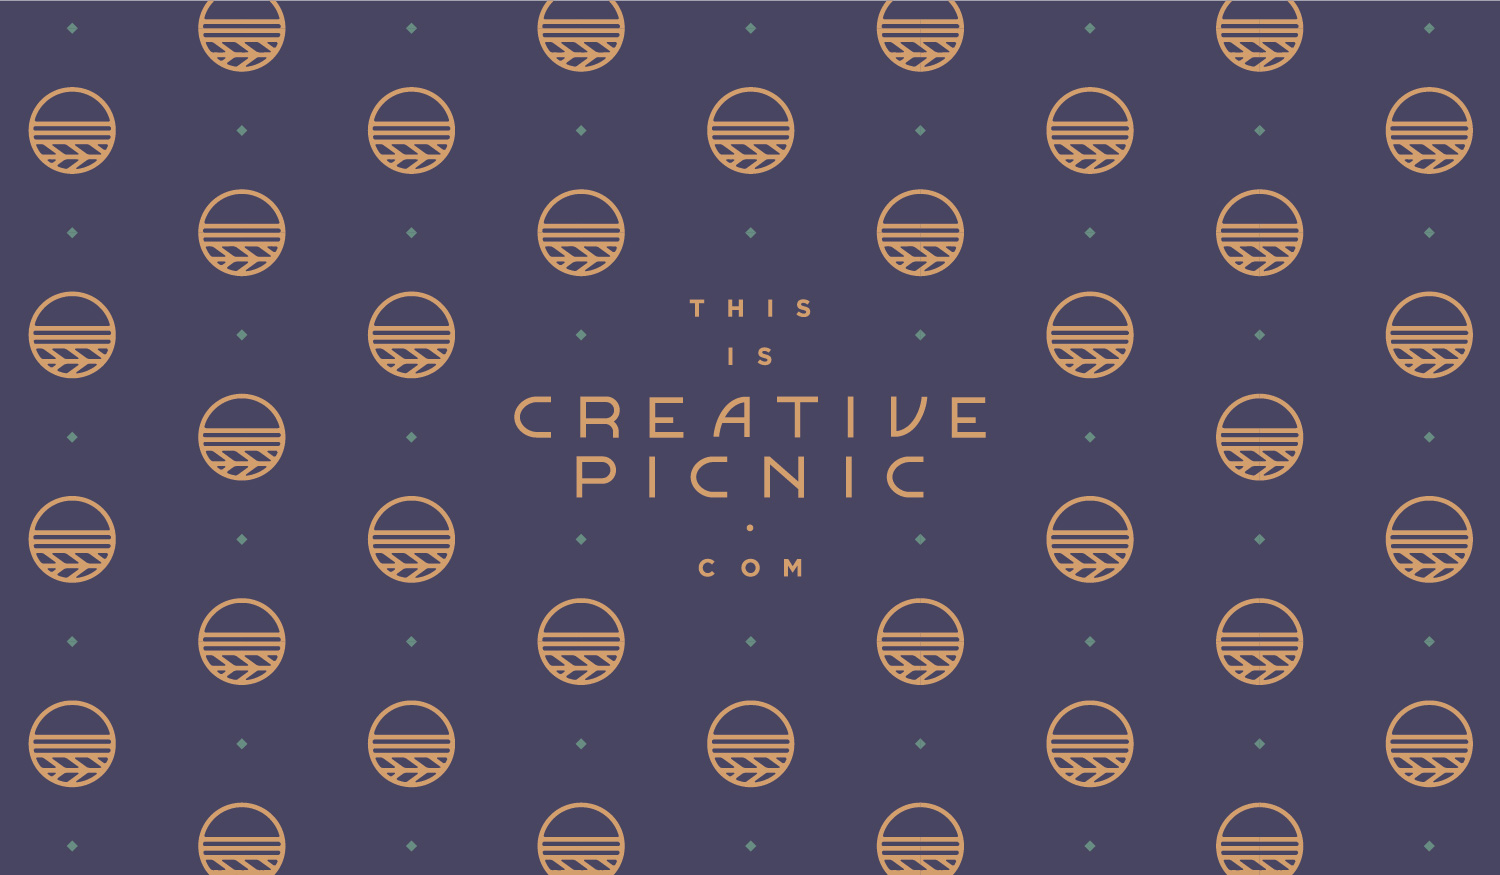 Creative Picnic - Logo & Brand Design by Melissa Yeager